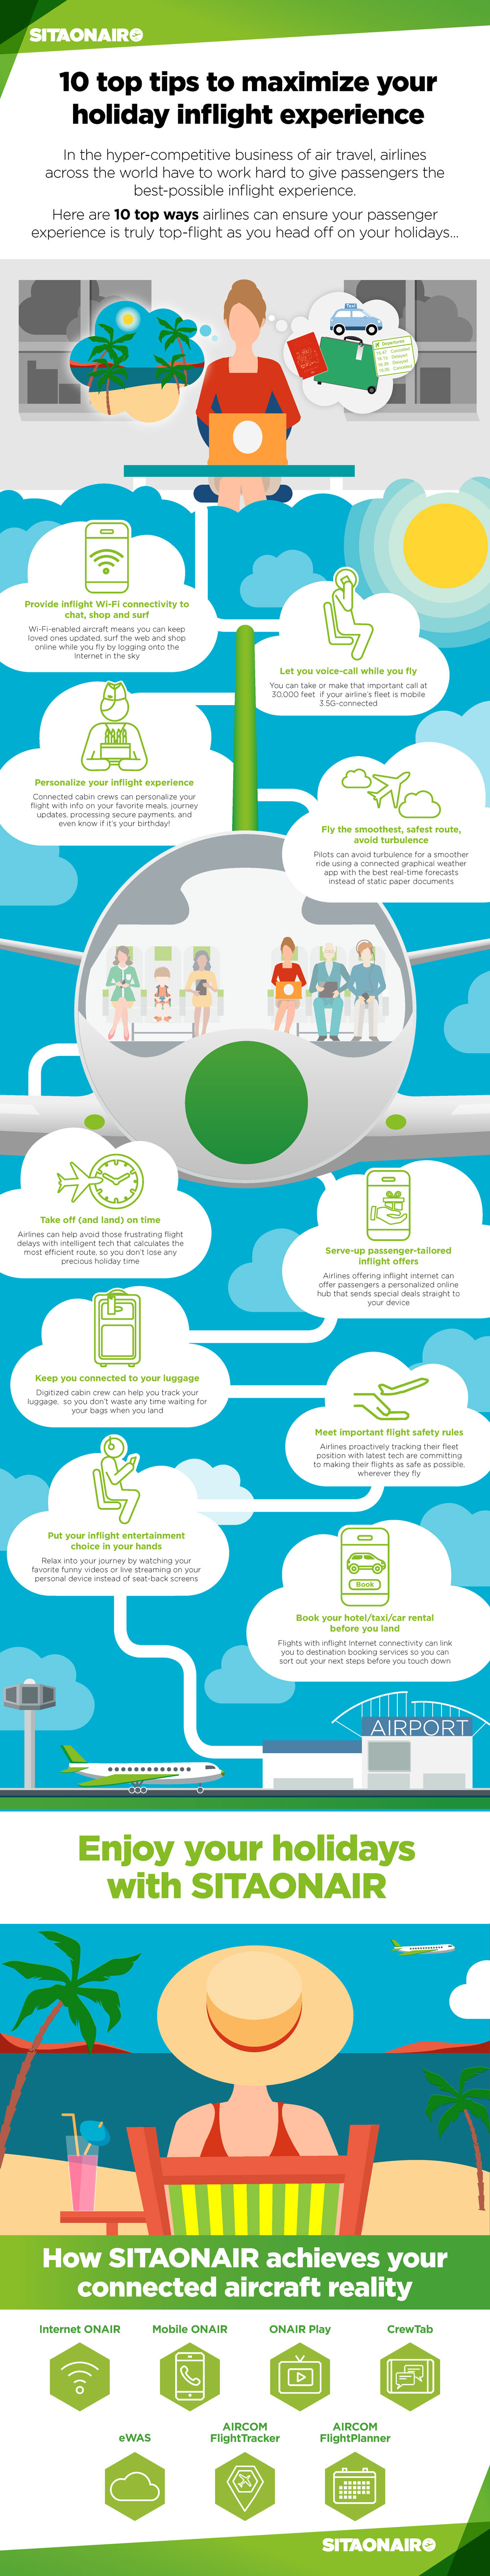 Airlines   IFExpress - Part 9